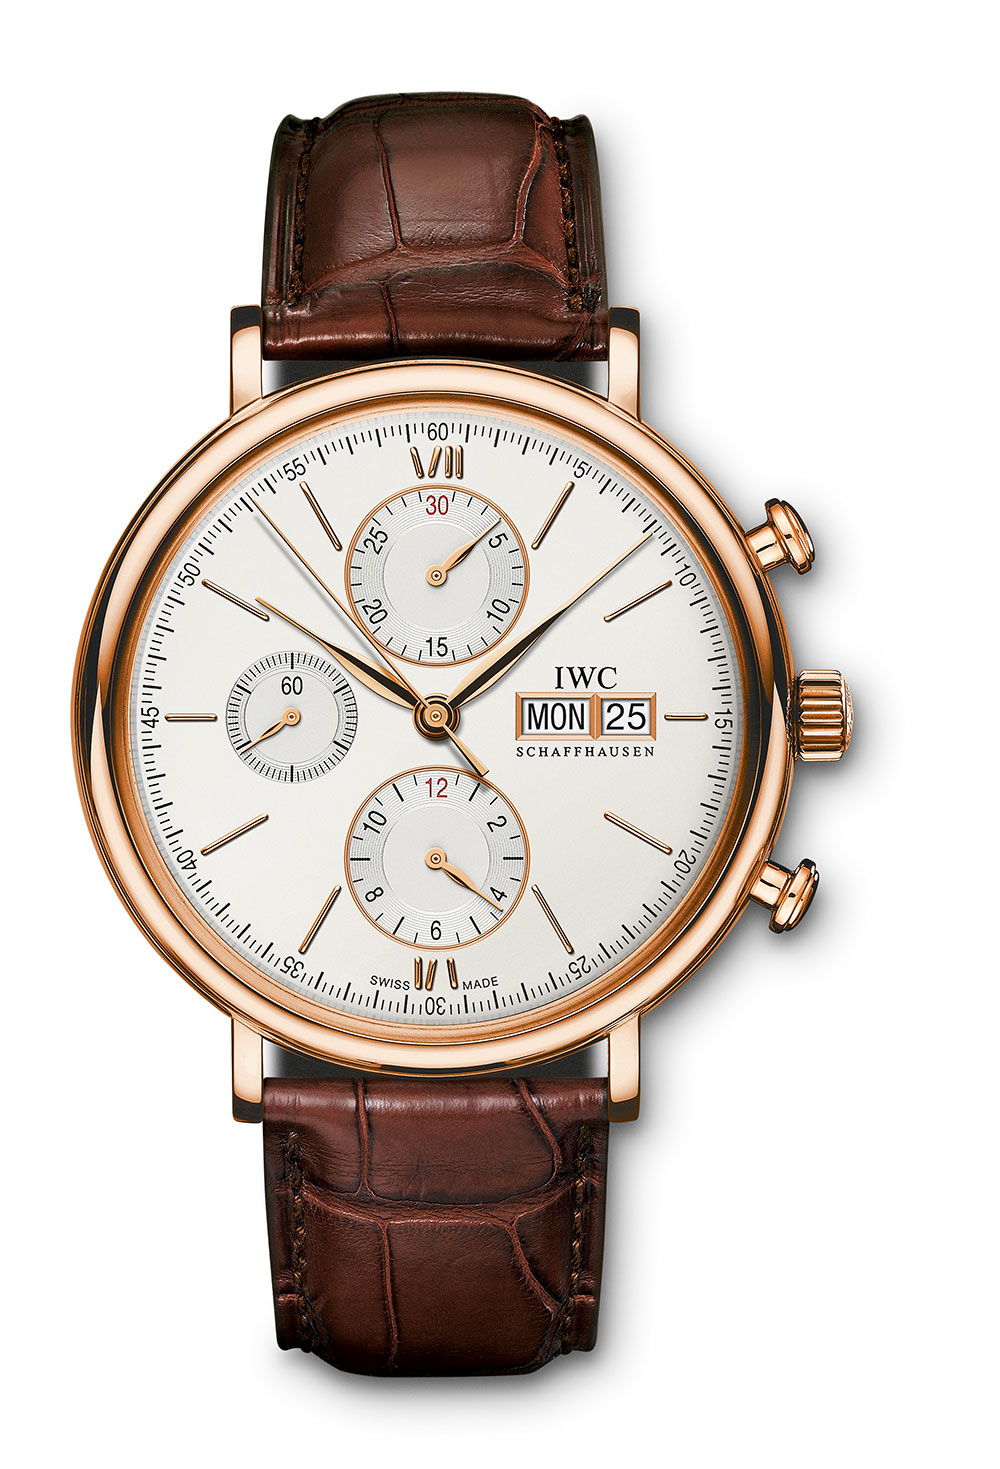 IWC Portofino Chronograph watch gold